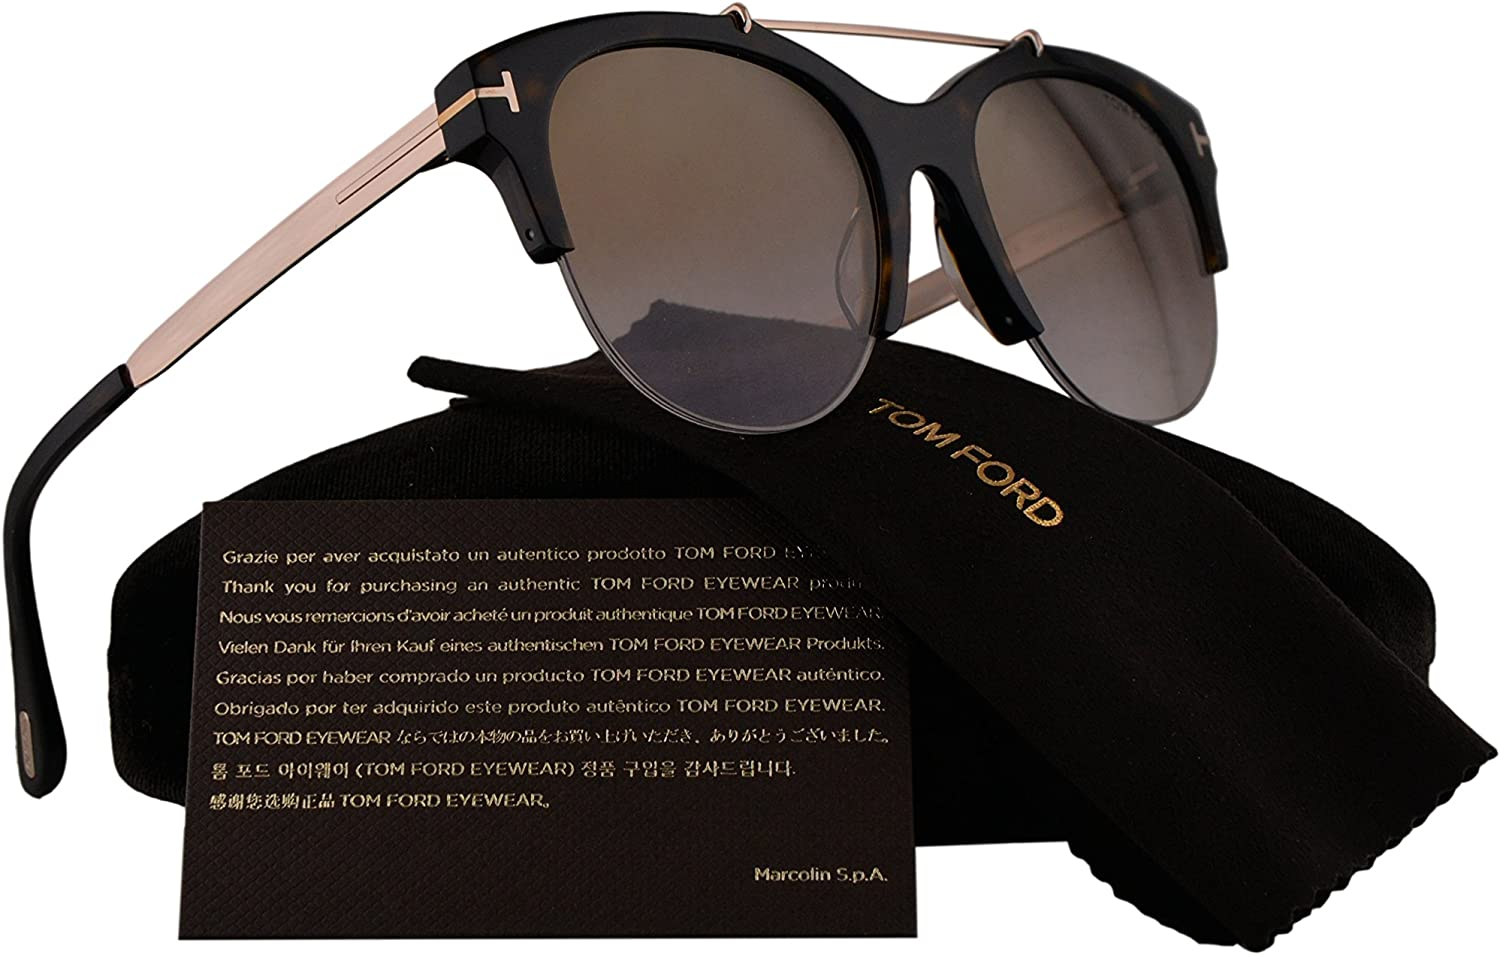 Tom Ford Adrenne TF517 517 Sunglasses Black Gold 01A Authentic 55mm